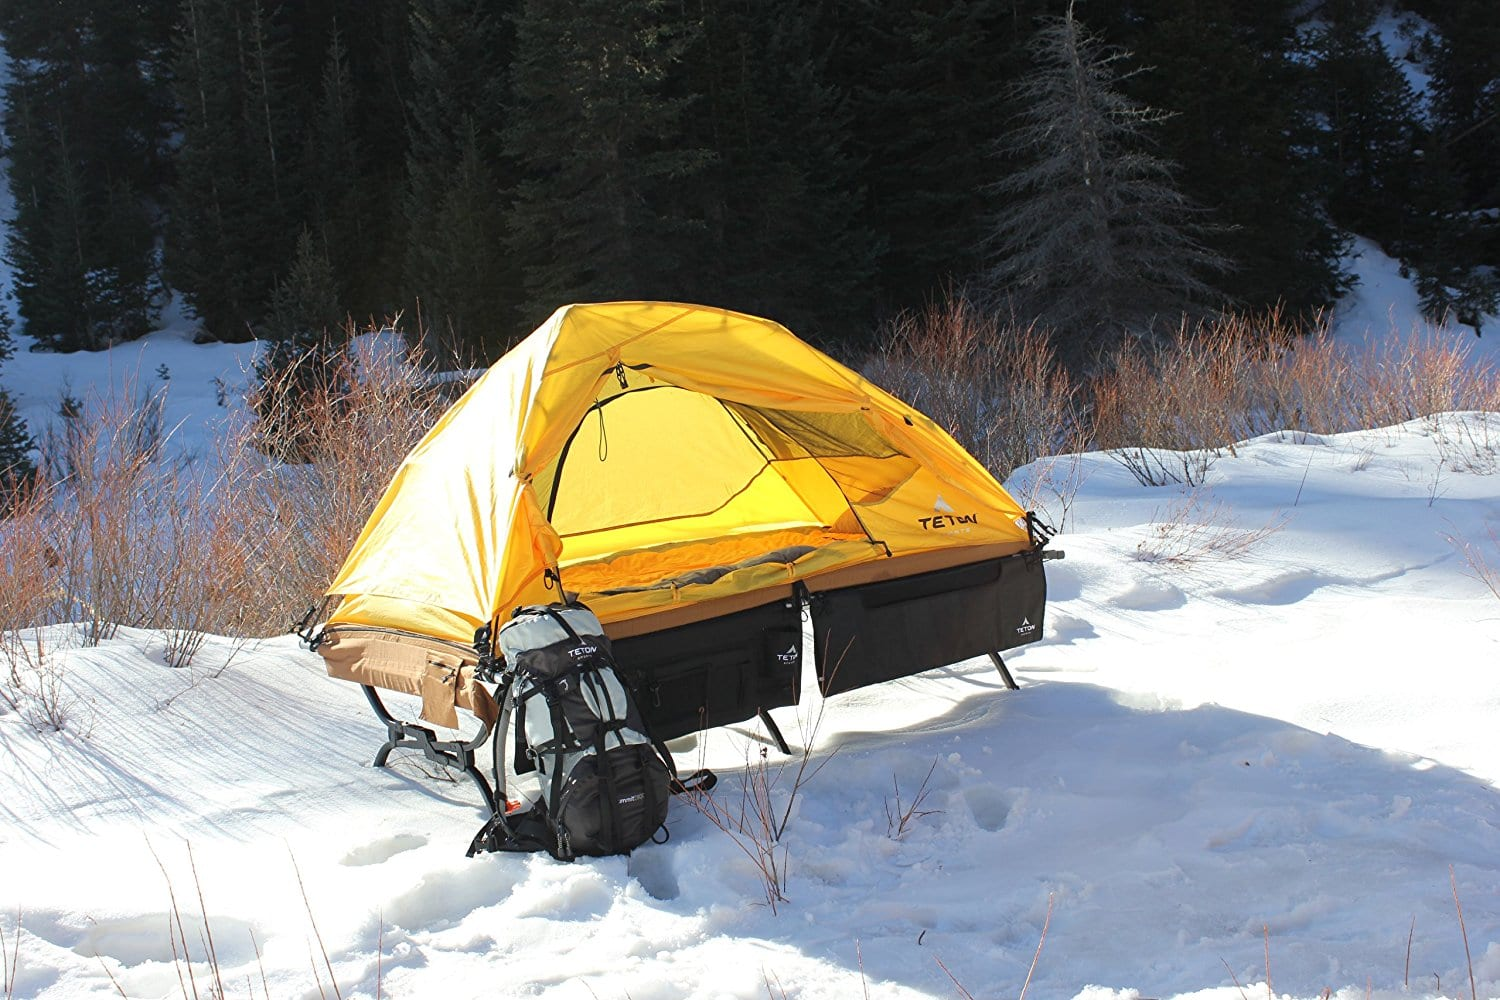 Ultralight Tent & TETON Sports Outfitter XXL Ultralight Quick Tent - 1 Man Pop Up